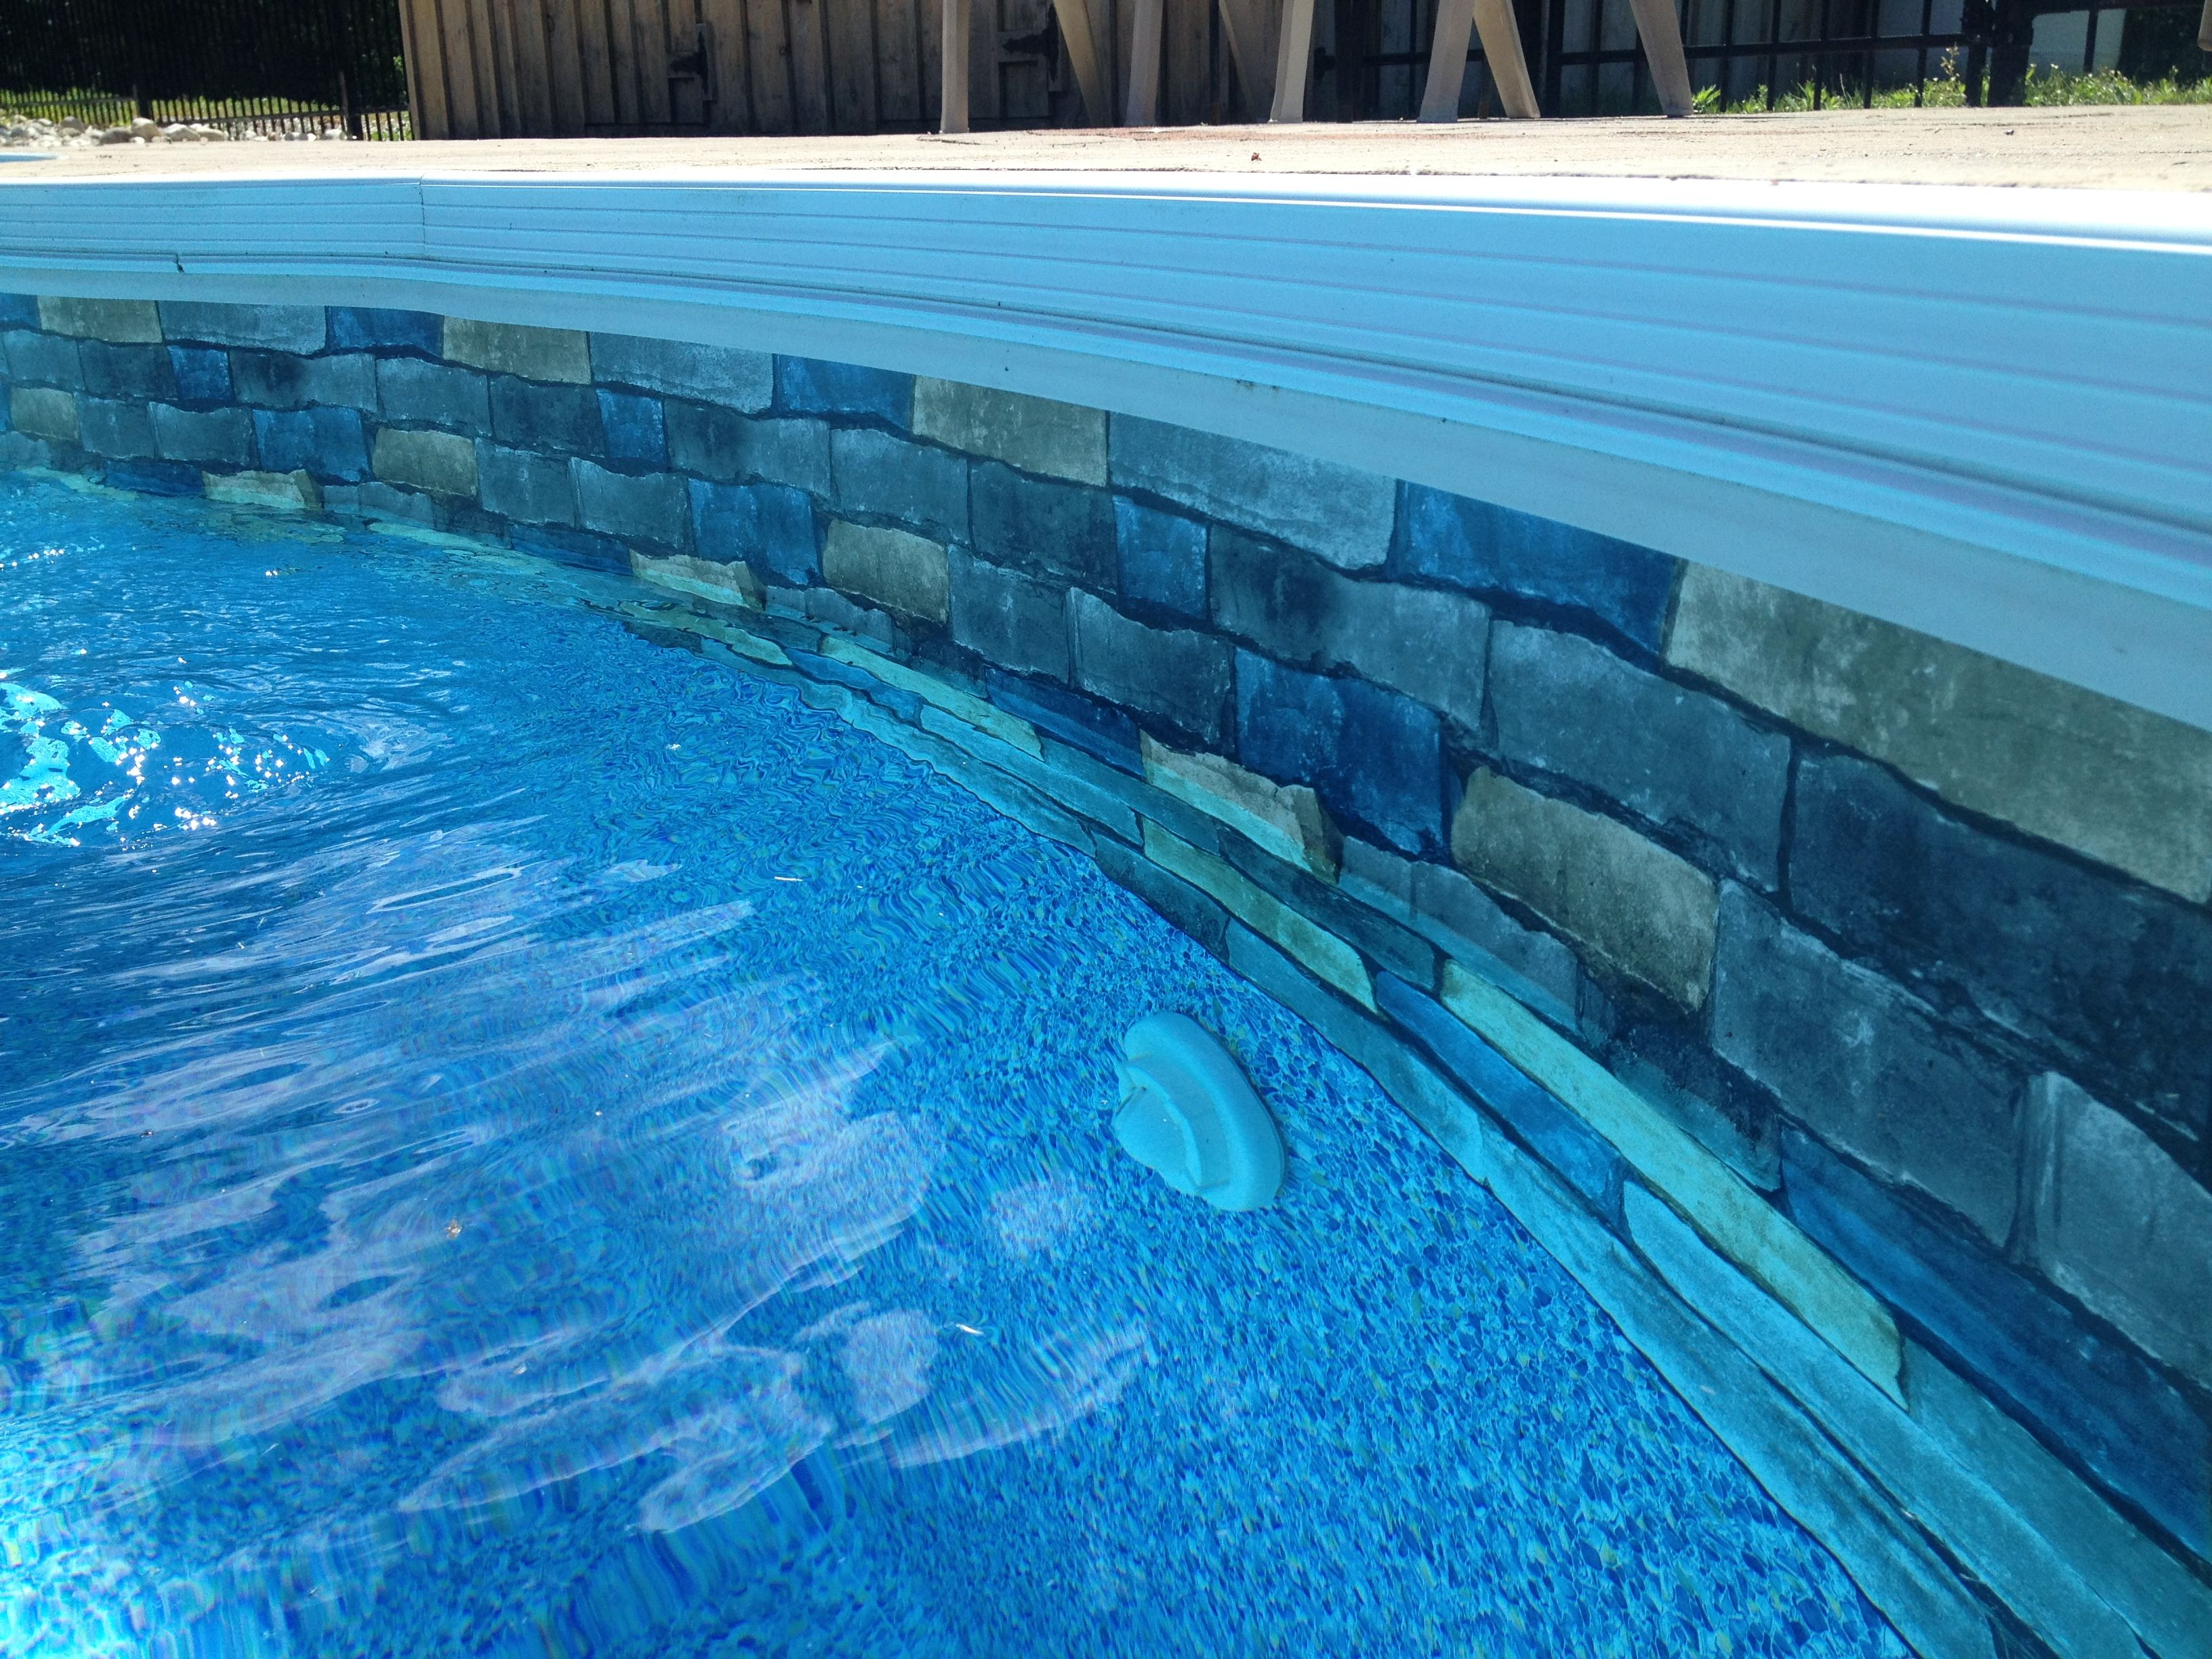 Brick pool liner pool liners pool liners above ground pool liners pool supplies for Above ground swimming pool liners